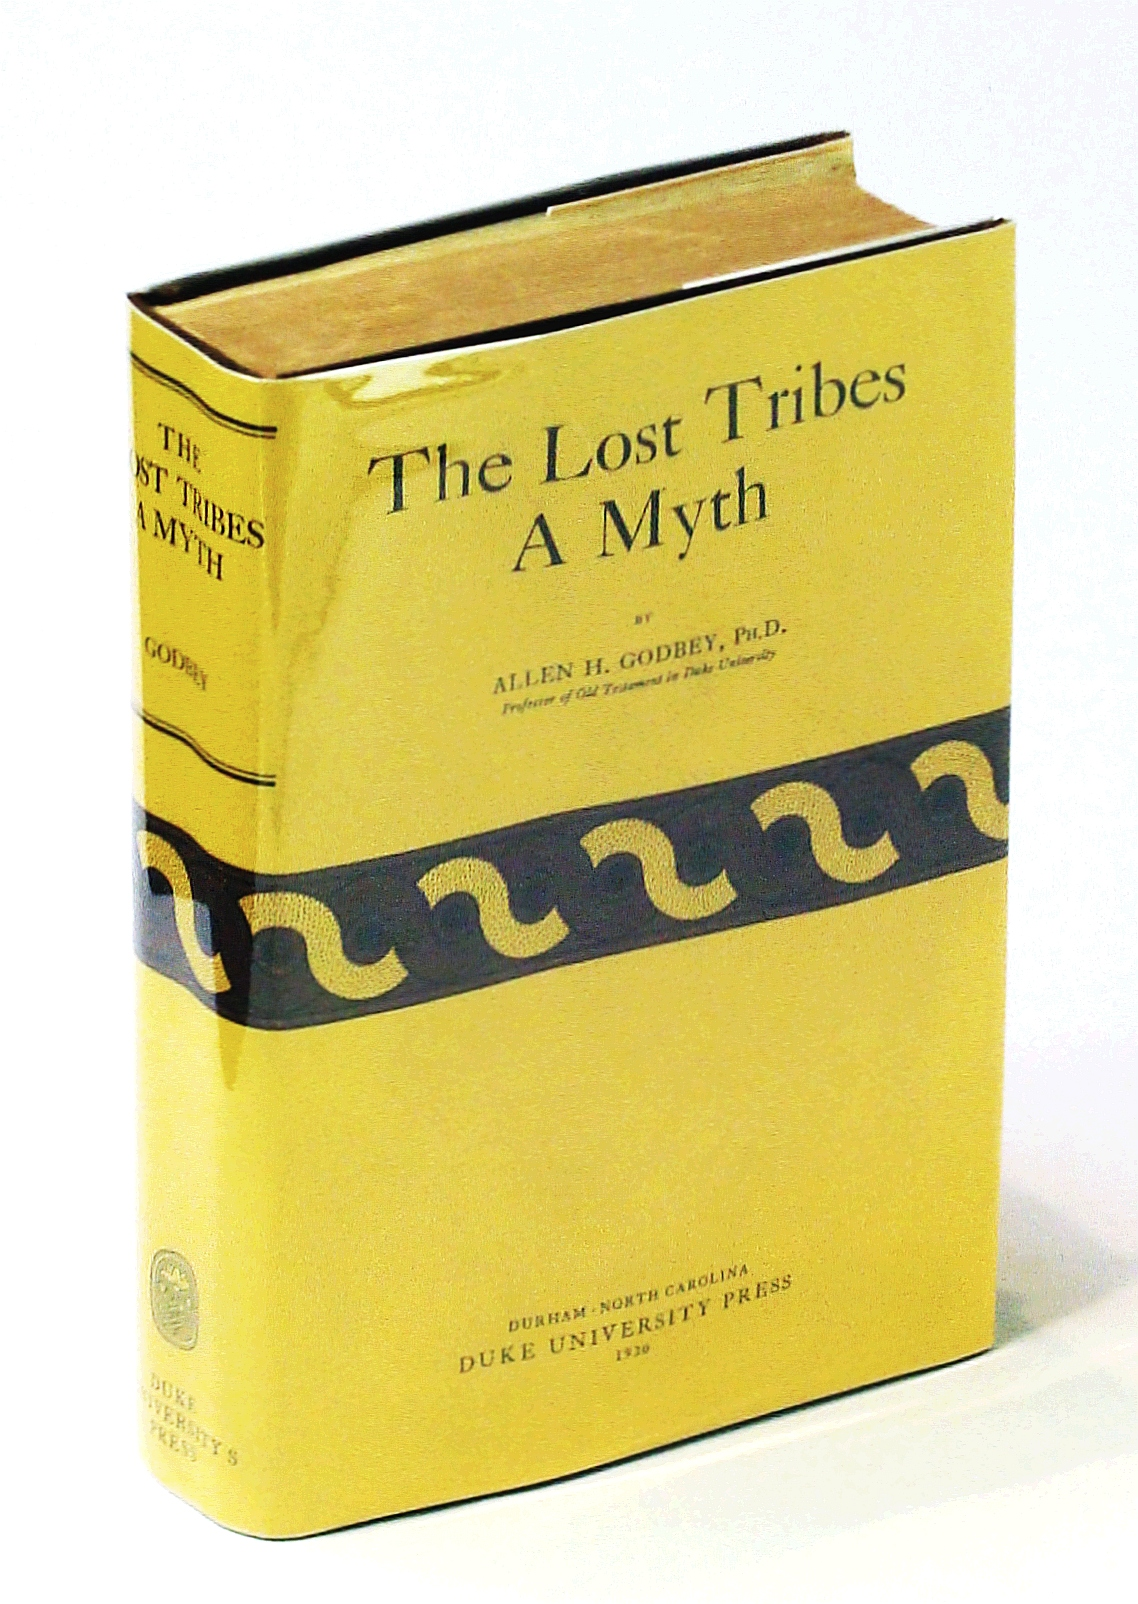 Image for The Lost Tribes, A Myth: Suggestions Towards Rewriting Hebrew History